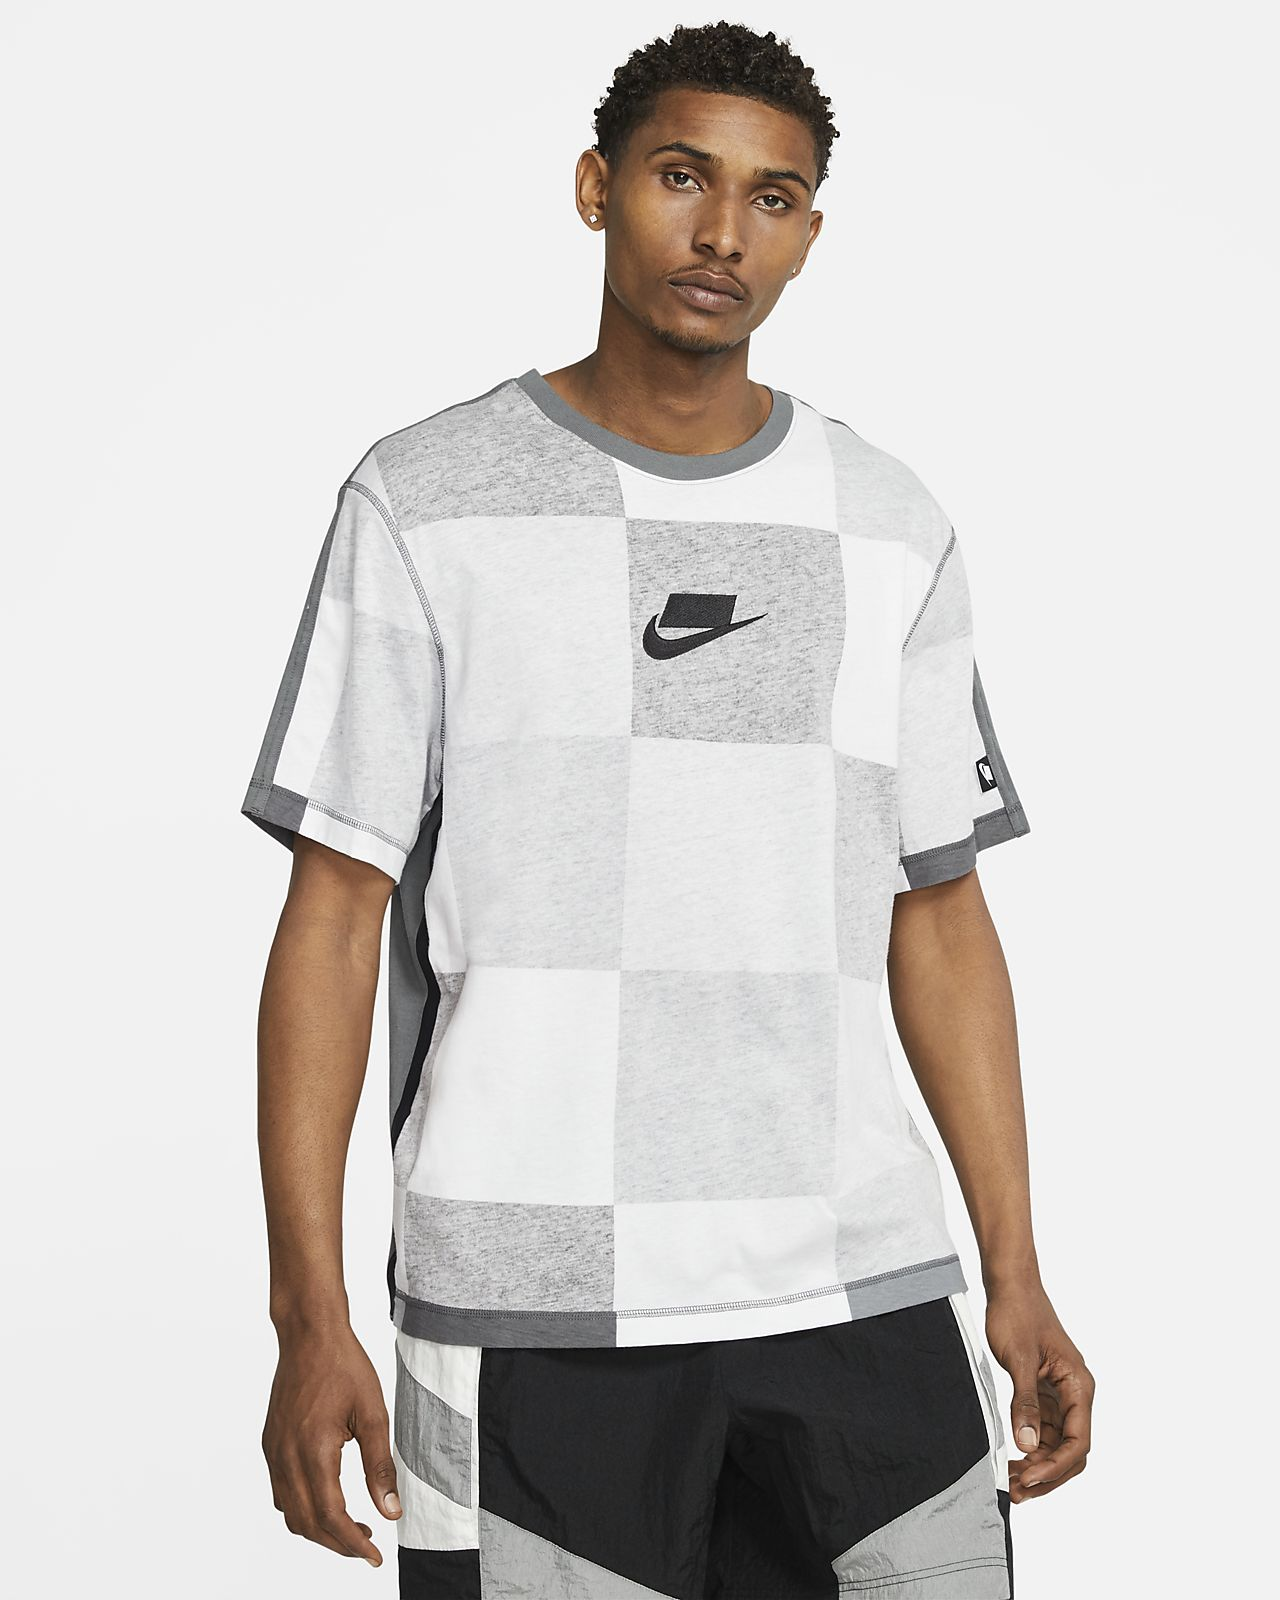 Nike Sportswear NSW Men's Short-Sleeve Knit Top